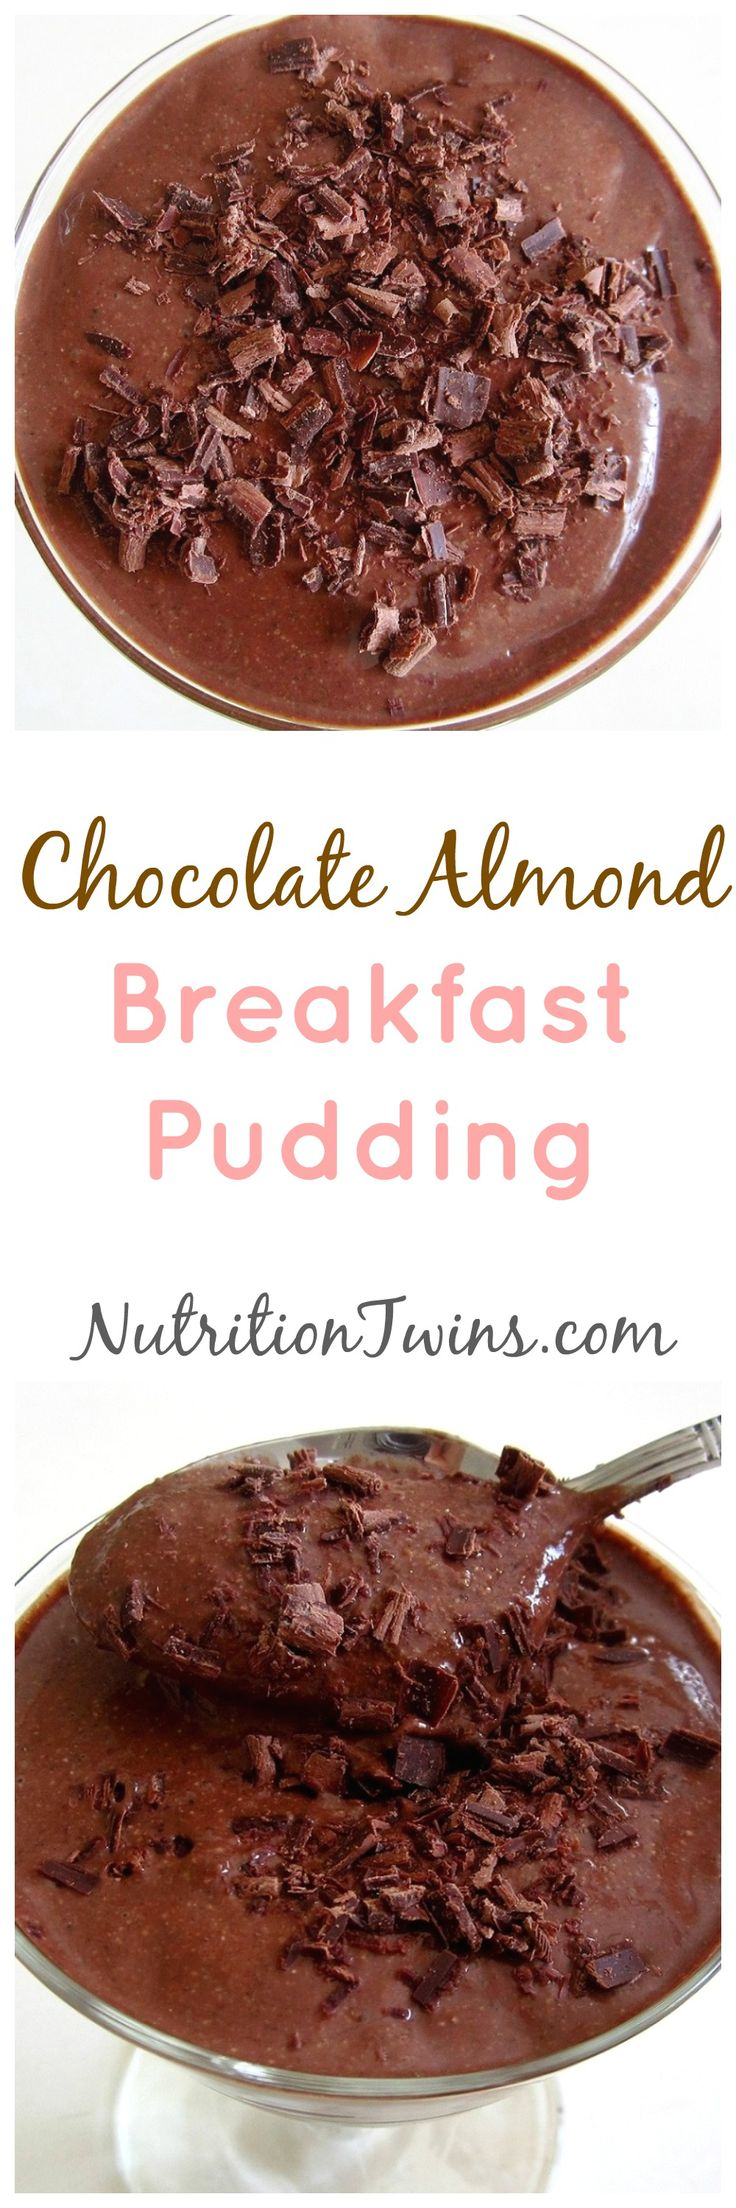 Chocolate Almond Breakfast Pudding | Only 124 Calories | Satiating Protein & Fiber Combo | Squashes Morning Cravings |For Nutrition & Fitness Tips & RECIPES please SIGN UP for our FREE NEWSLETTER www.NutritionTwins.com